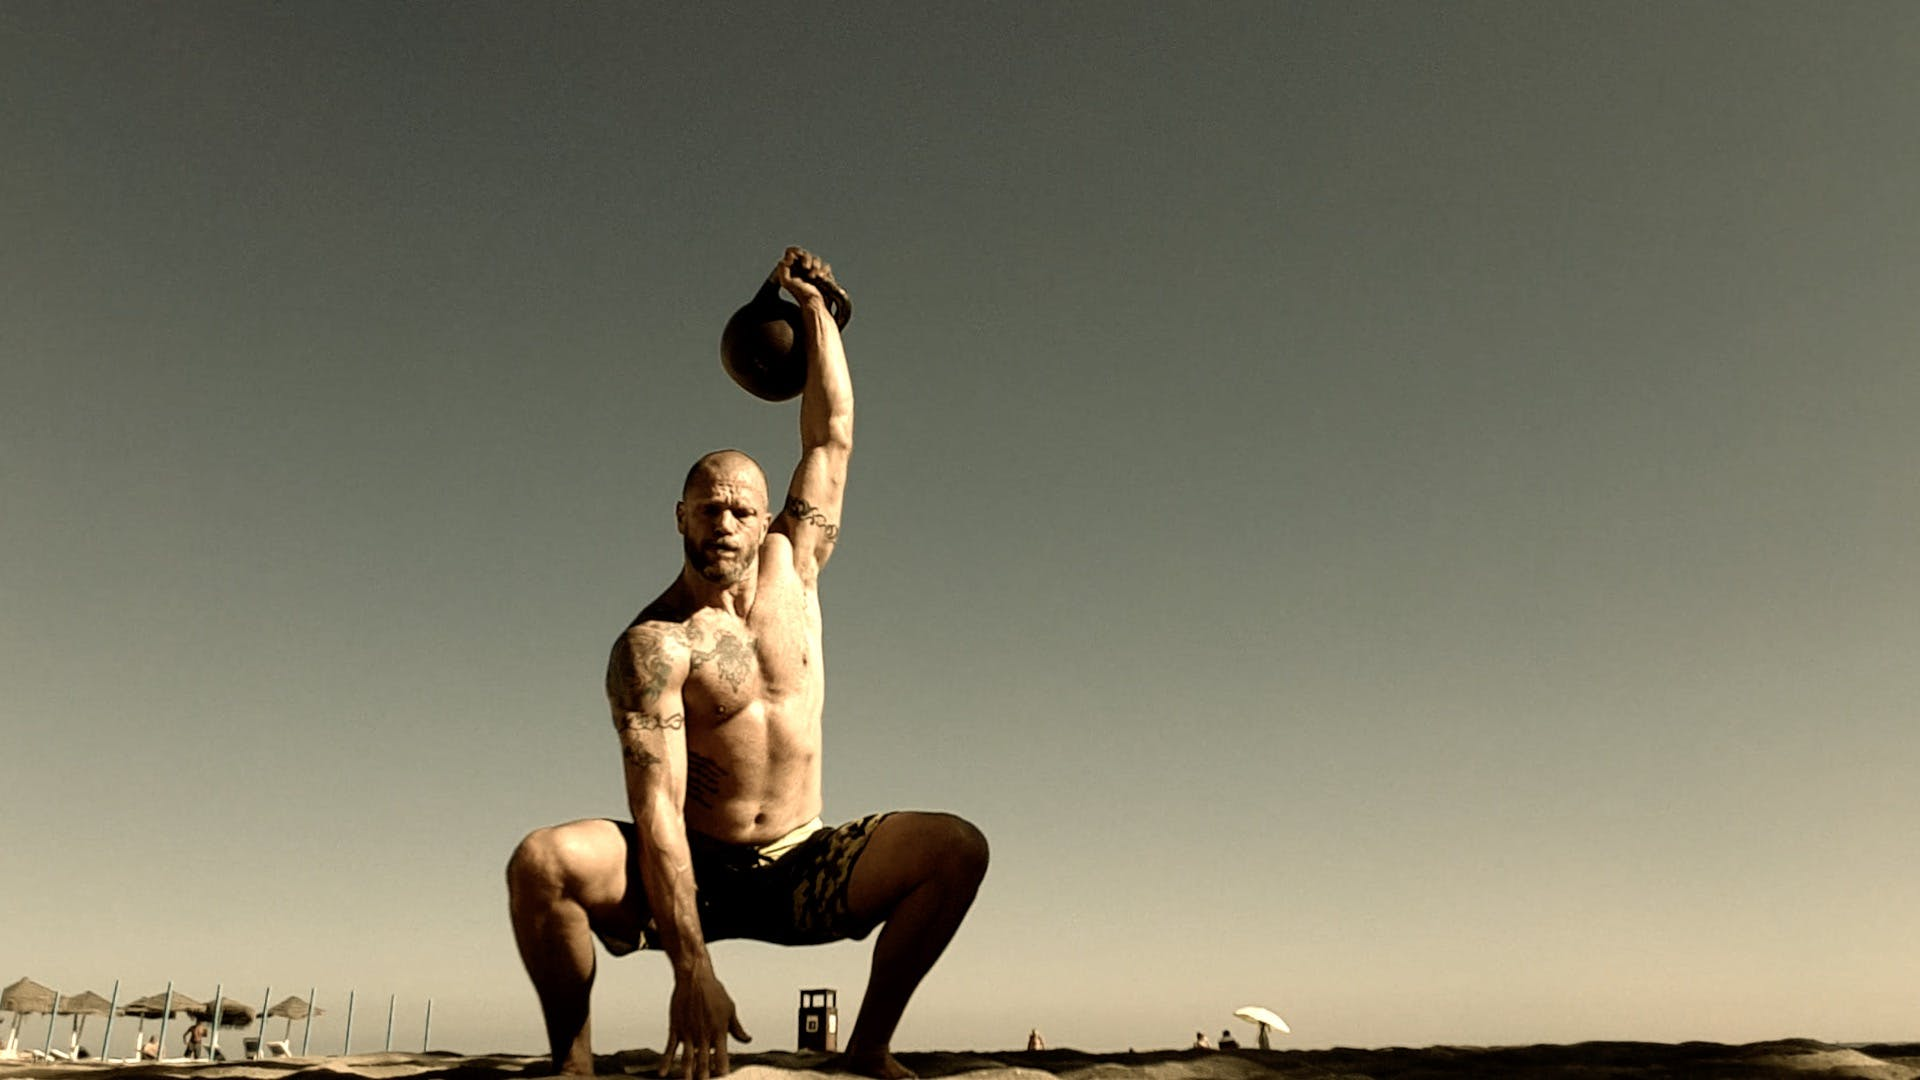 Free stock photo of beach, fitness, exercise, lift